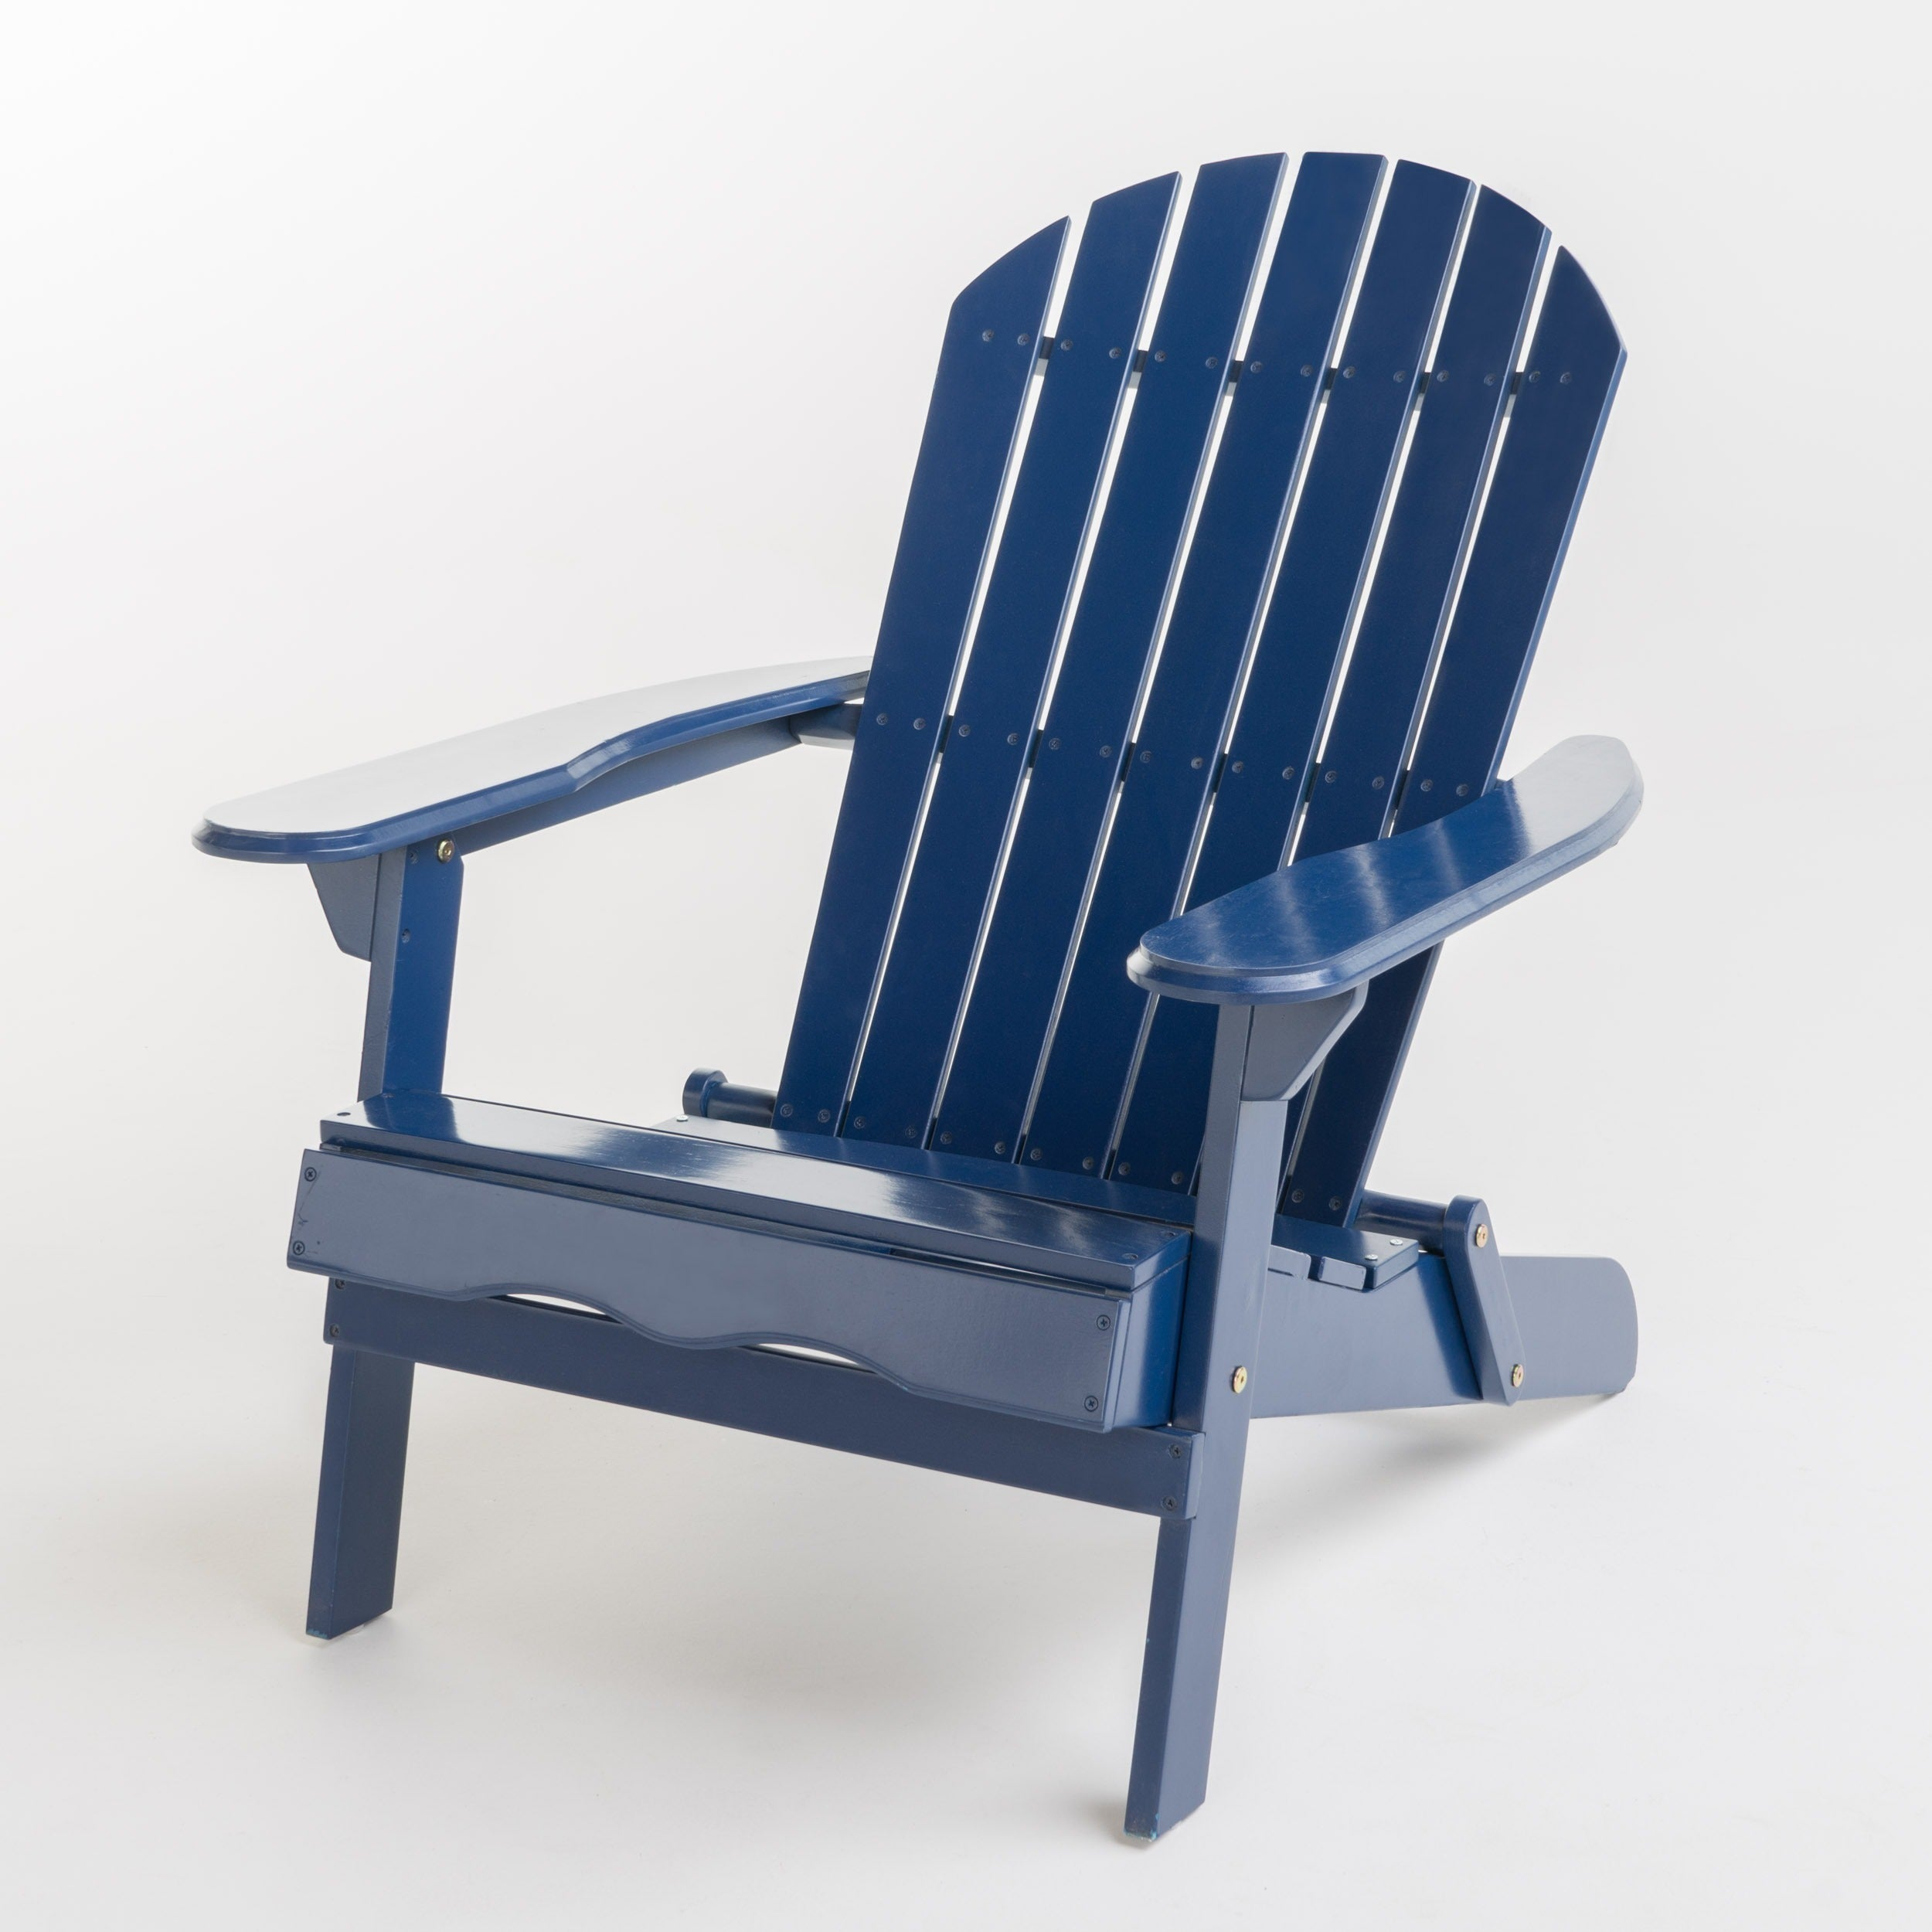 Hanlee Outdoor Folding Wood Adirondack Chair By Christopher Knight Home    Free Shipping Today   Overstock   18626091